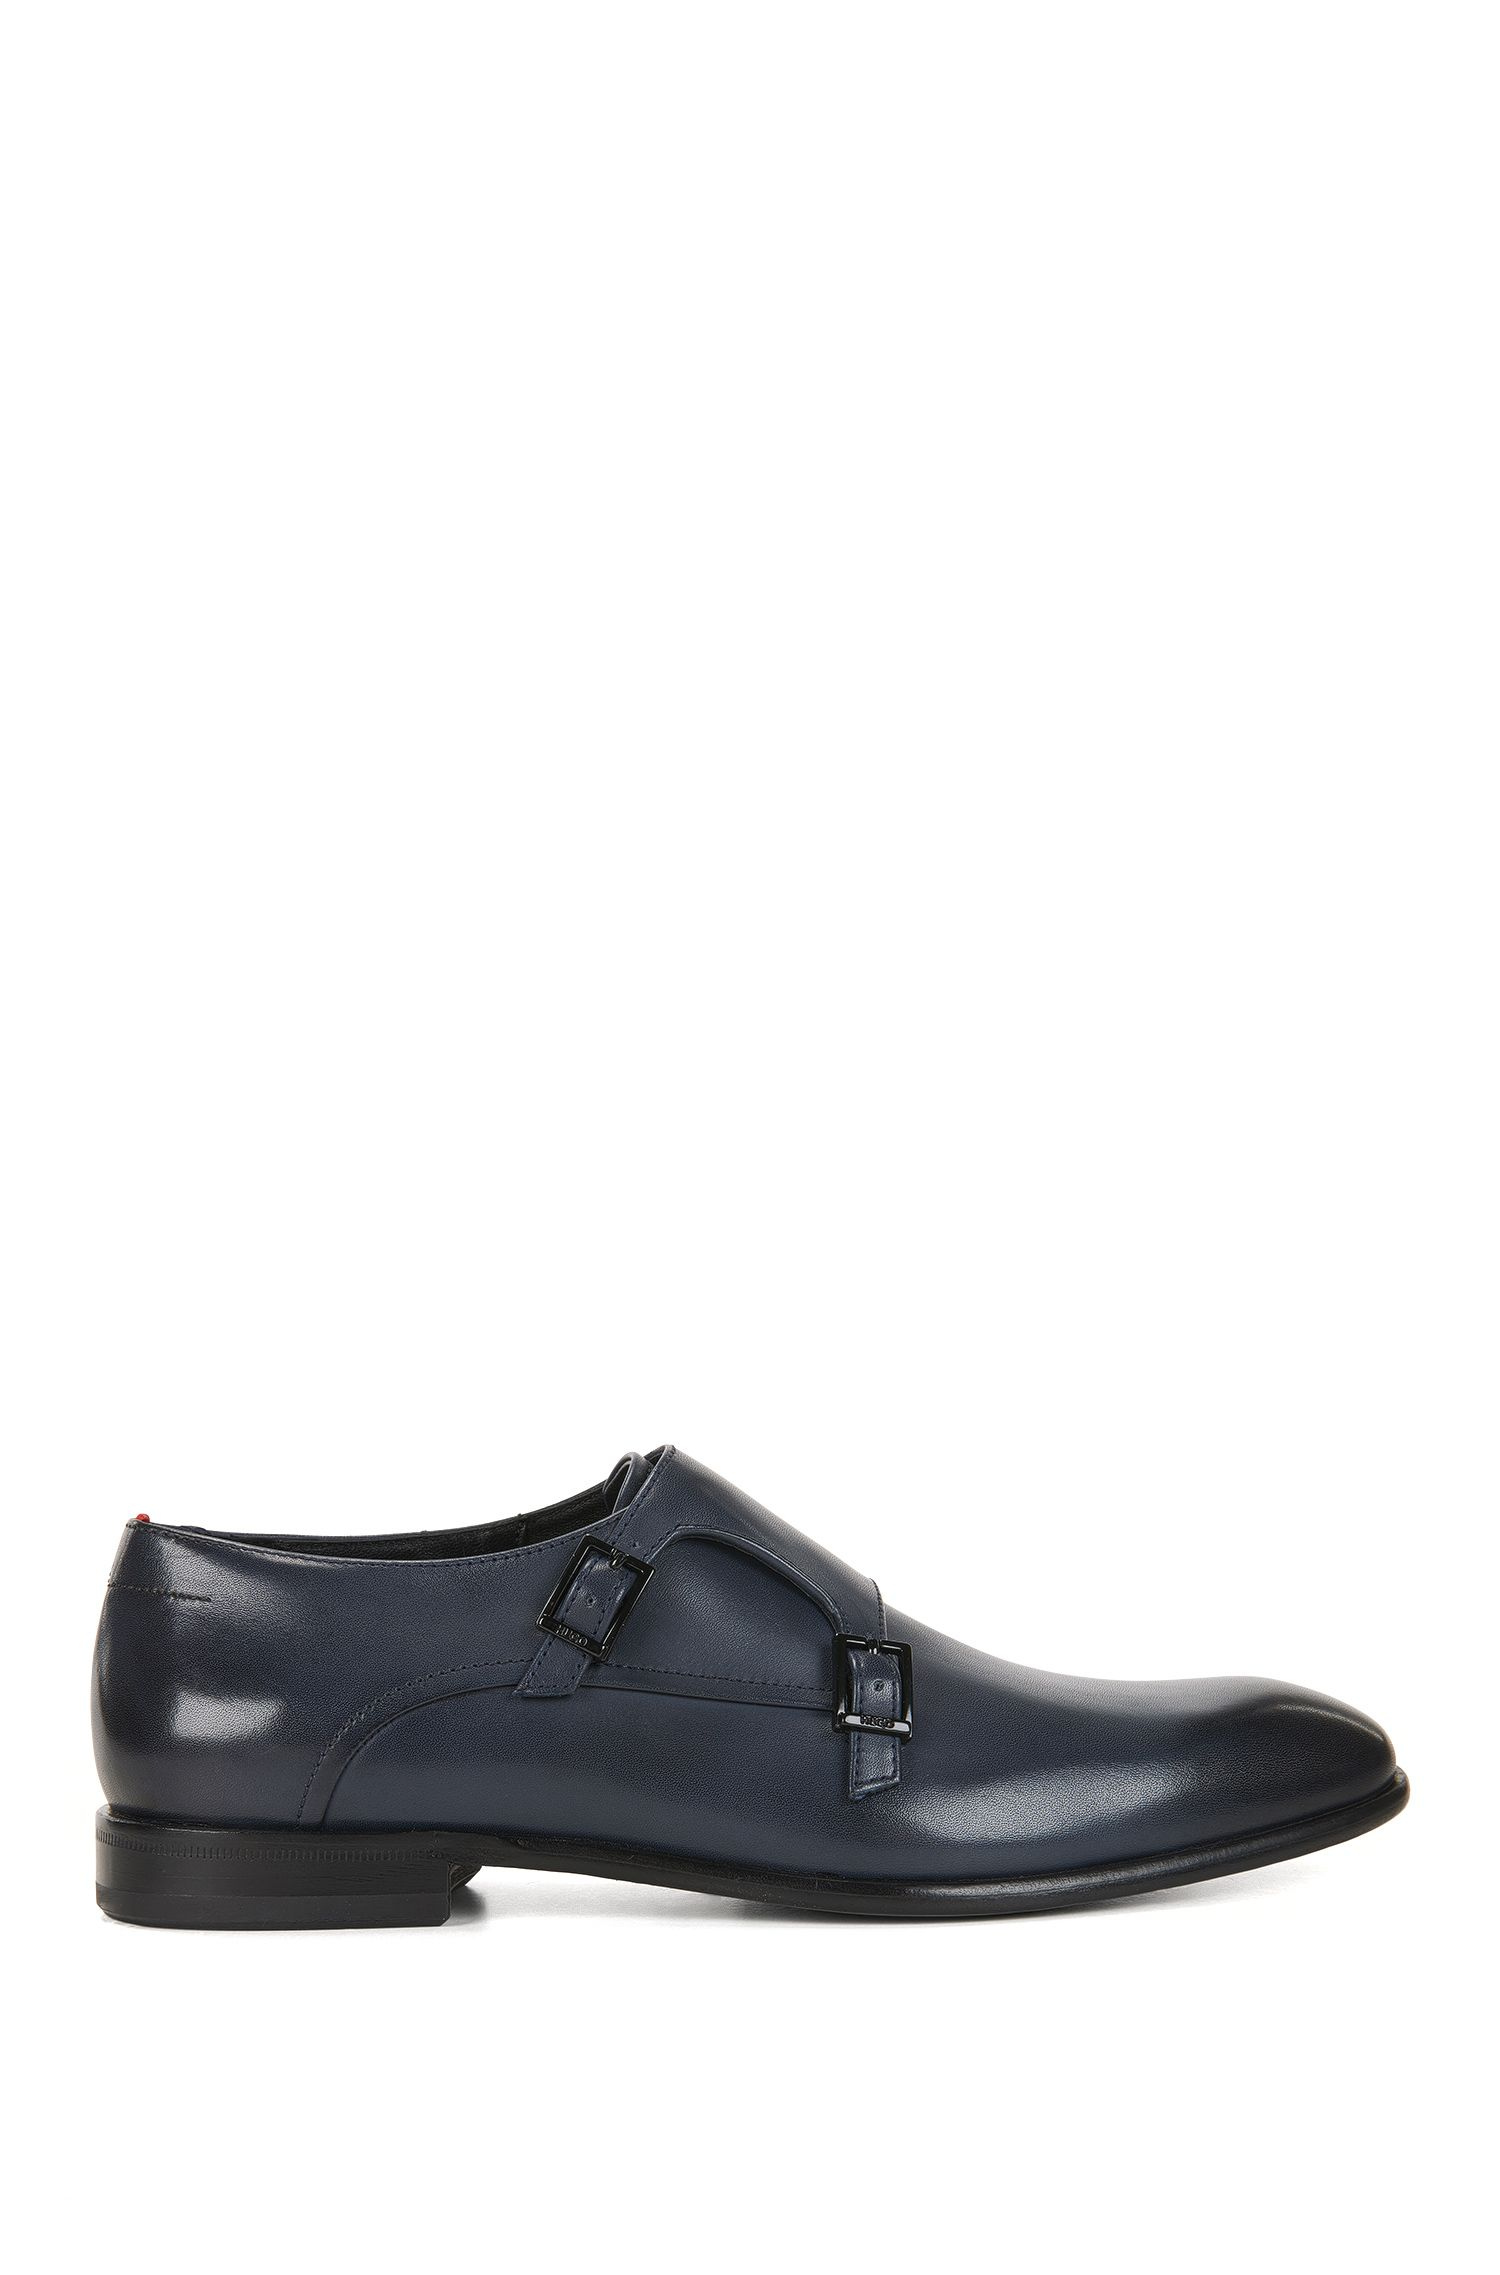 Leather Double Monk Strap Dress Shoe | Dressapp Monk BU